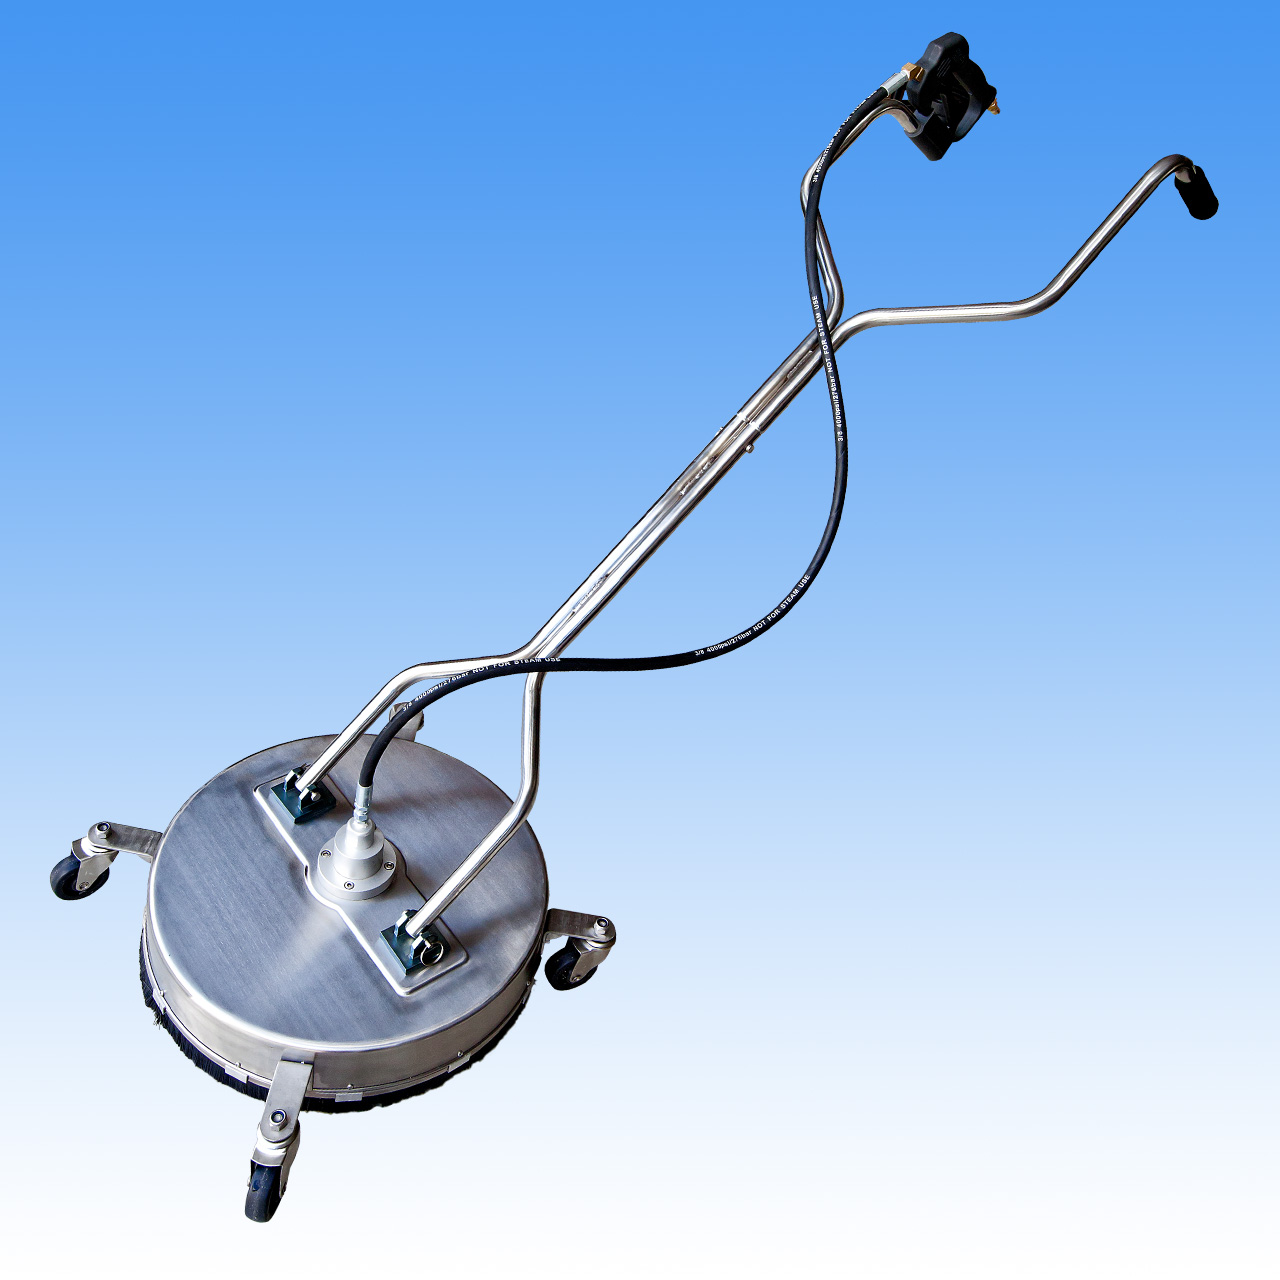 20 Inch Rotary Floor Surface Cleaner Stainless Steel 2